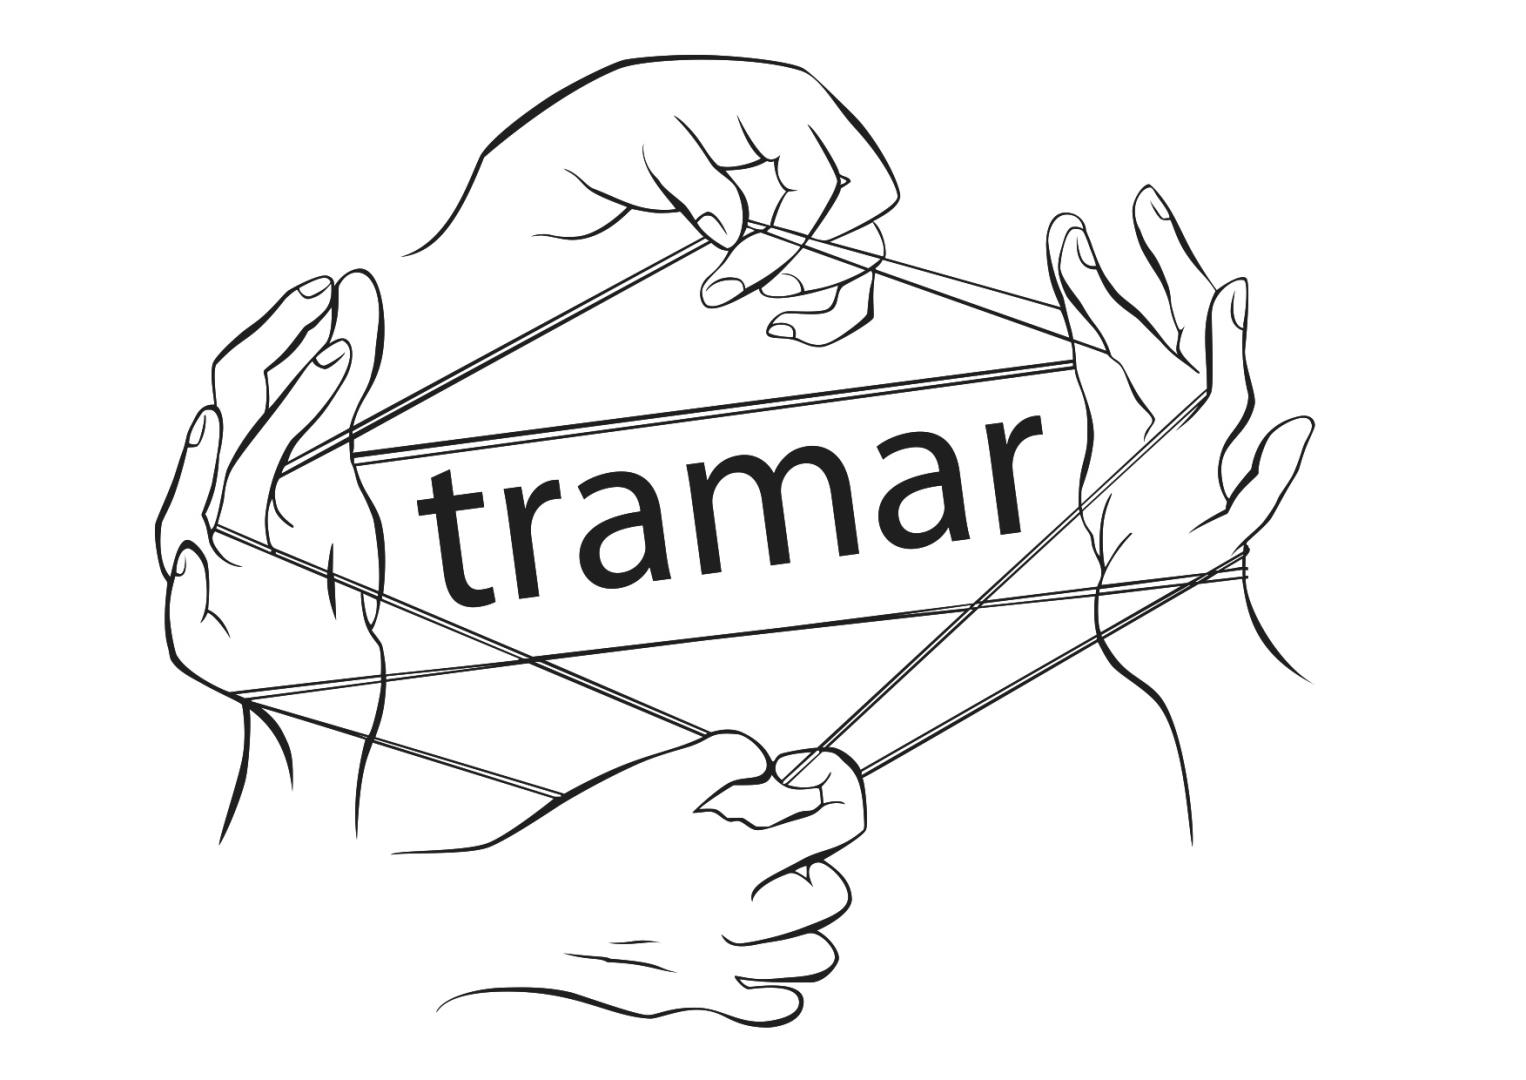 Association - Tramar